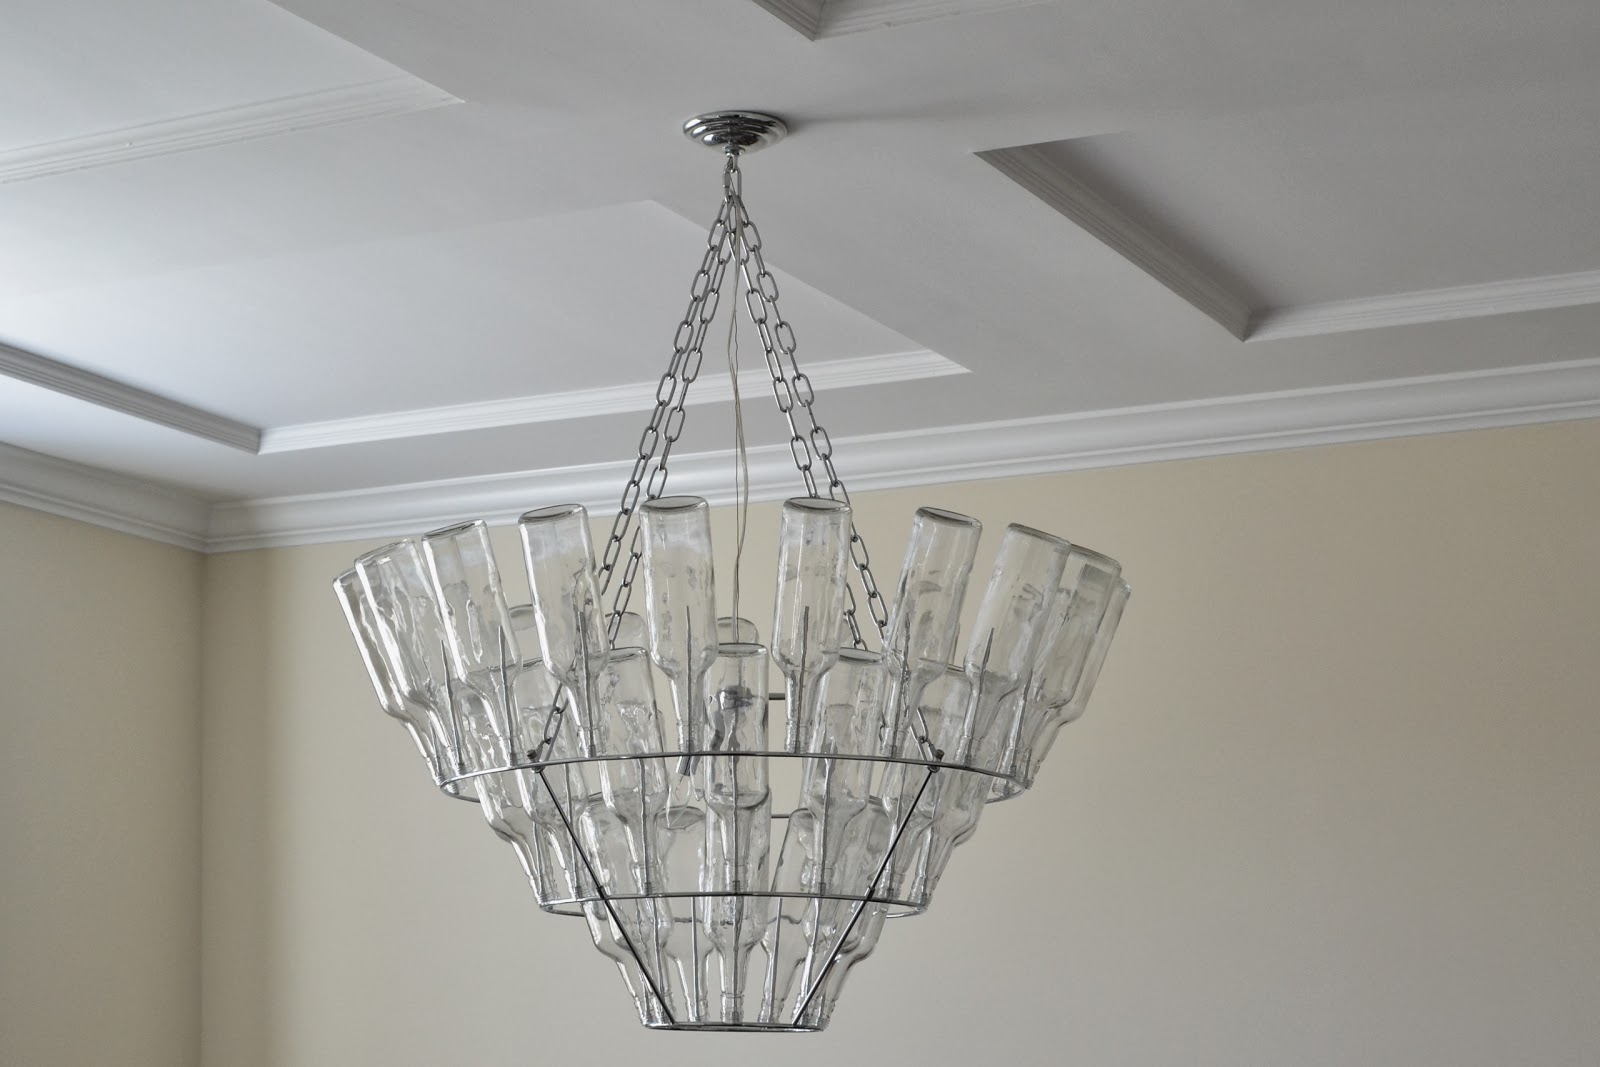 Dining room progress wine bottle chandelier laforce be with you i plan to sell our practically new chandelier that came in the dining room when the house was built which retails at over 400 arubaitofo Images